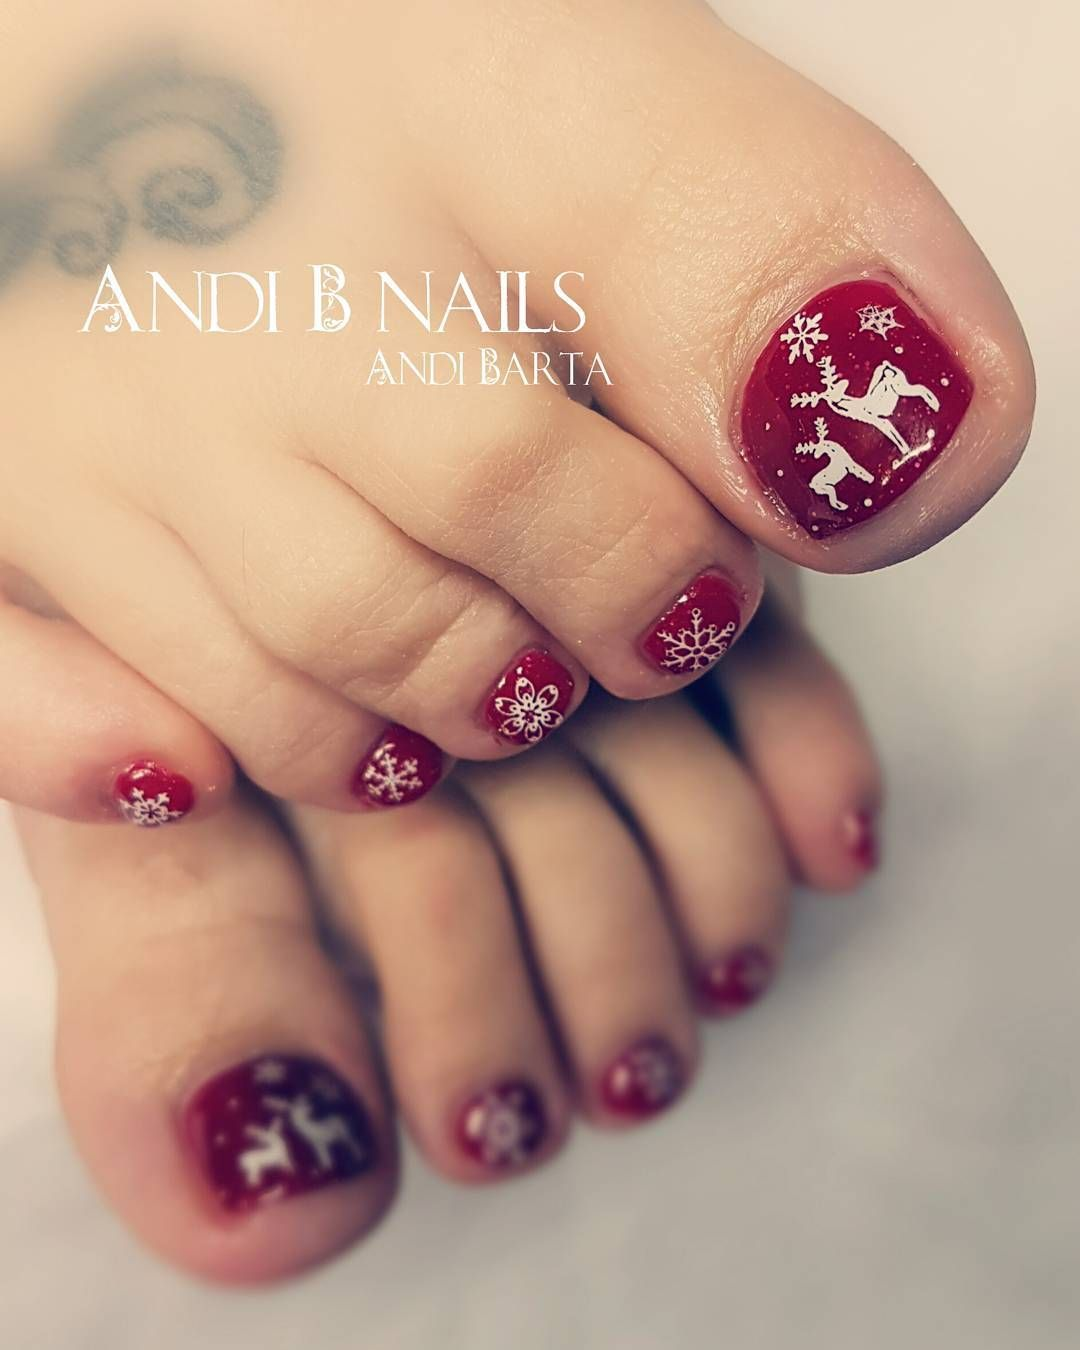 60 Pretty Christmas Toe Nail Designs For Holiday Blurmark Christmas Nails Christmas Toes Toe Nails